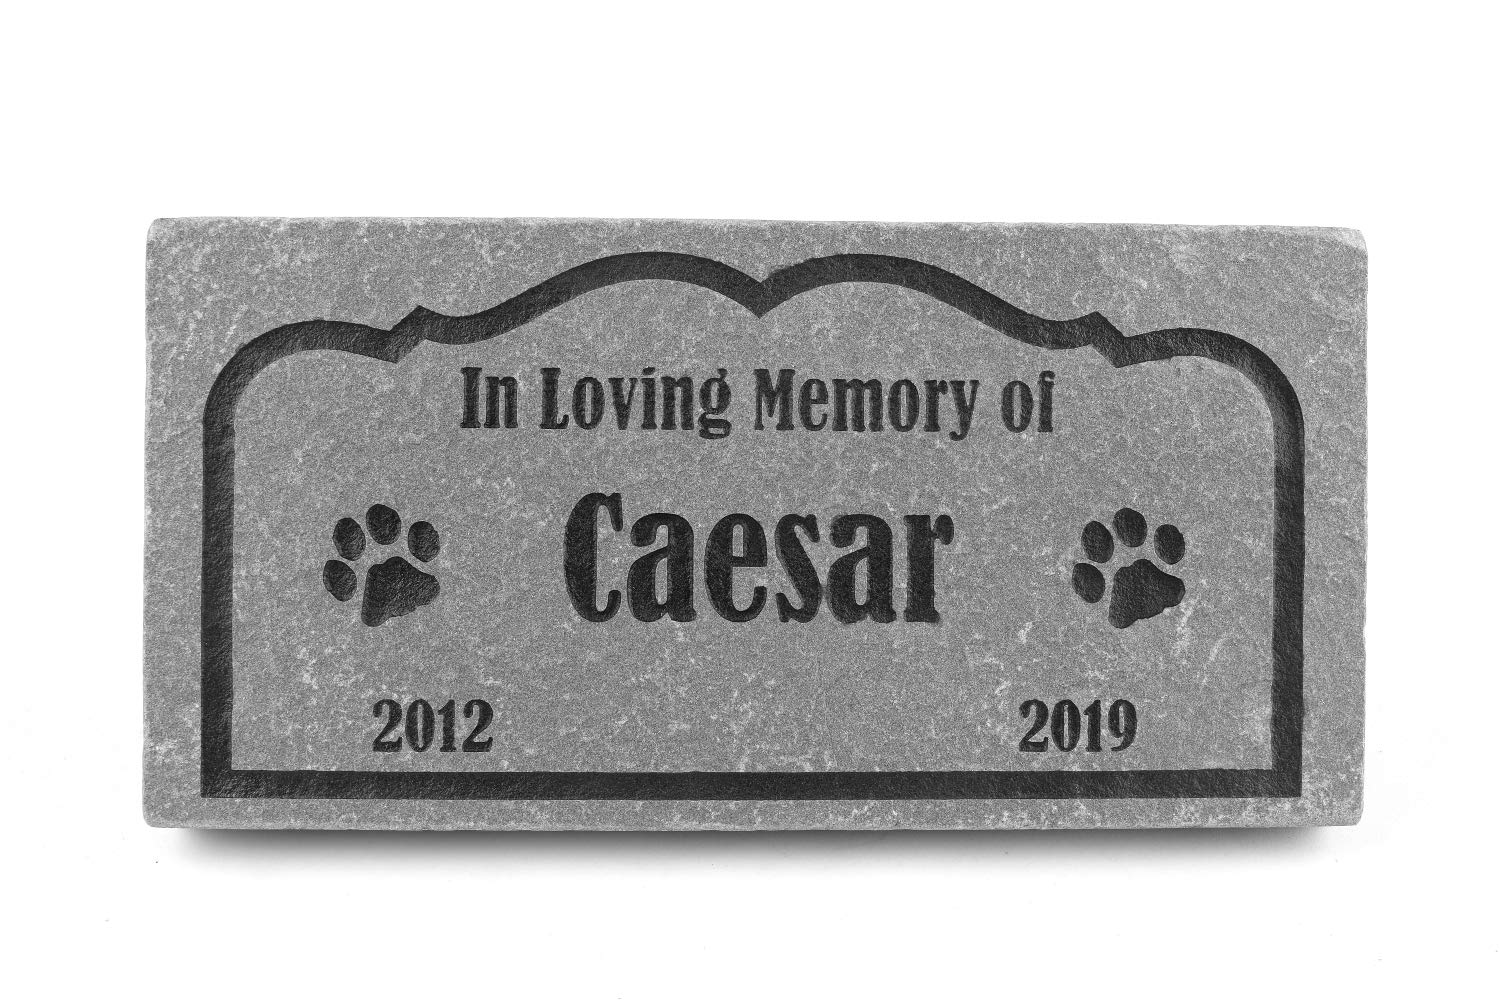 GraphicRocks Sandblast Engraved Grey Pet Memorial Stone Headstone Grave Marker for Pet Loss Dog Cat 6 inch x 12 inch Personalized with Pet Name and Years by GraphicRocks